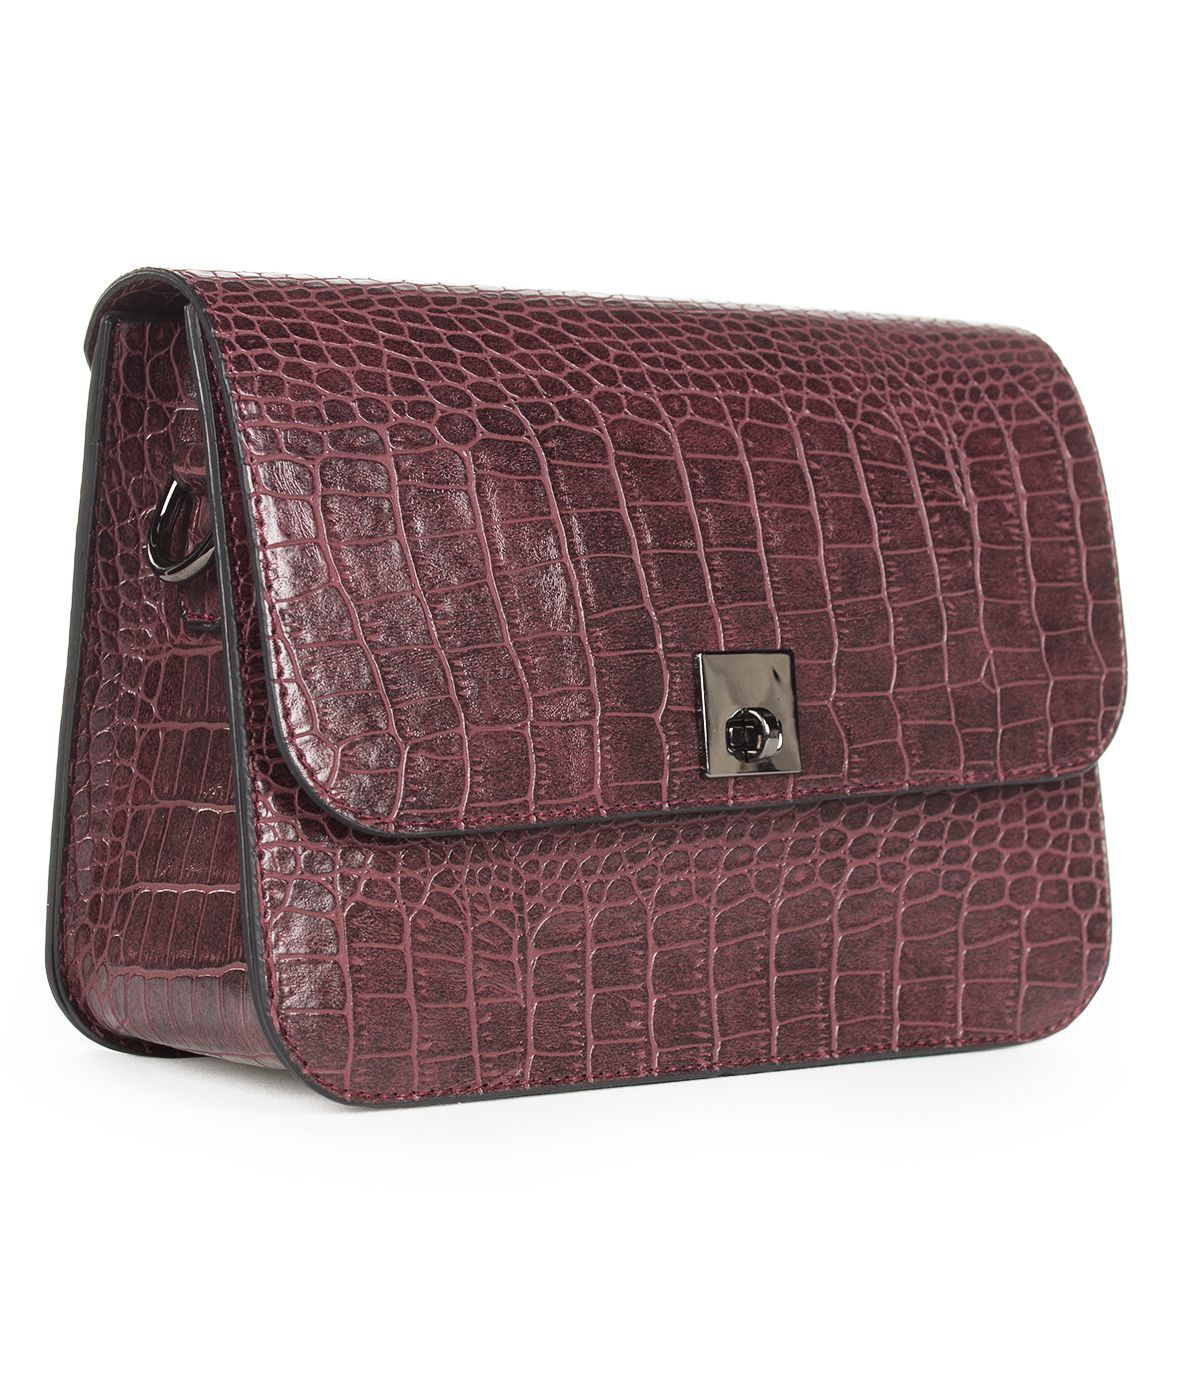 LEATHER BORDO  BAG WITH SNAKE SKIN IMITATION  0